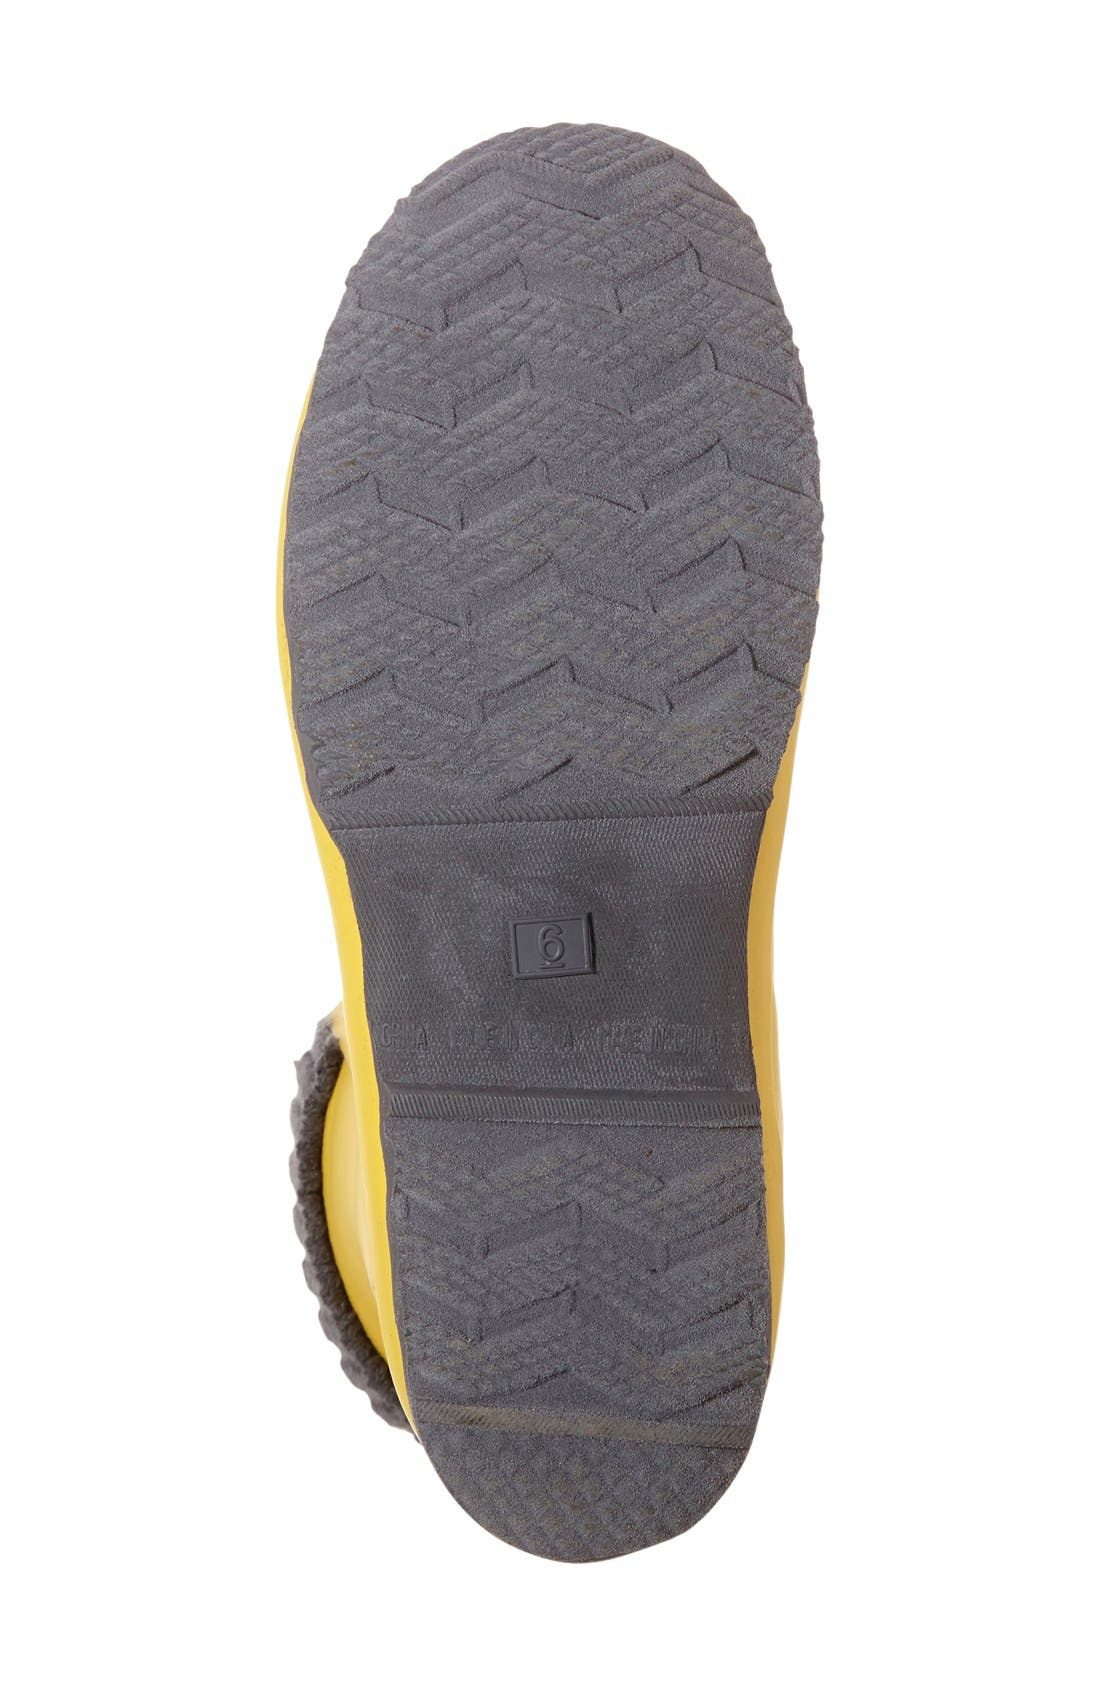 Lace-Up Weatherproof Rain Boot,                             Alternate thumbnail 4, color,                             BUTTER YELLOW